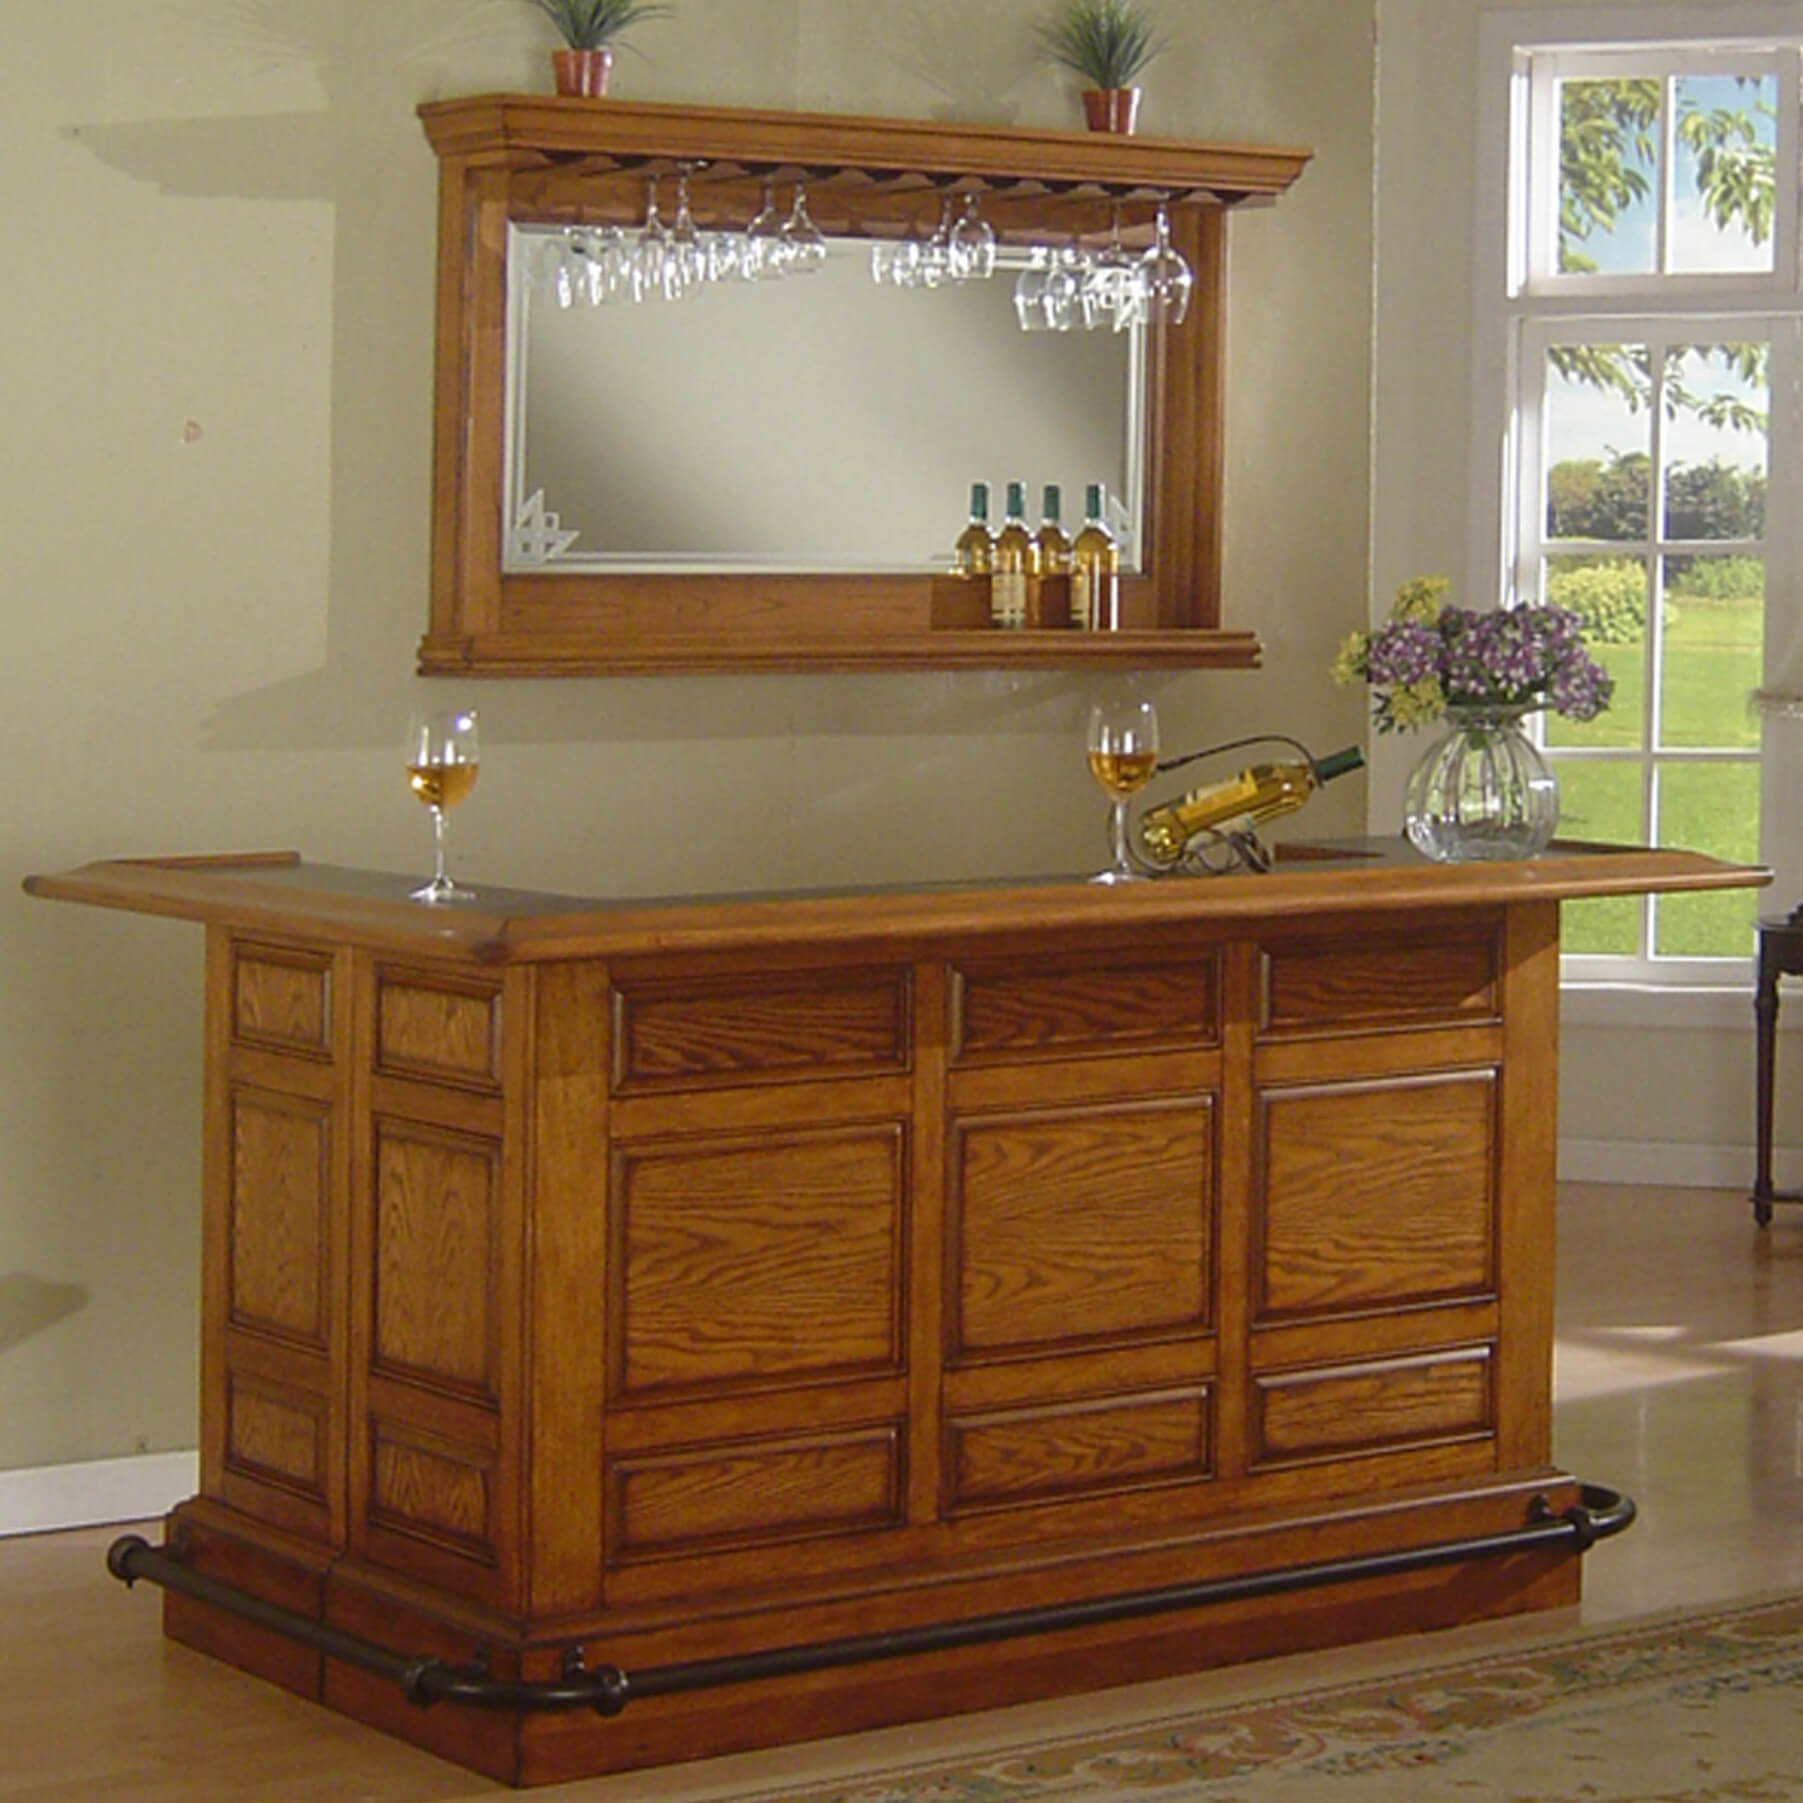 Solid wood home bar with wrap-around counter.